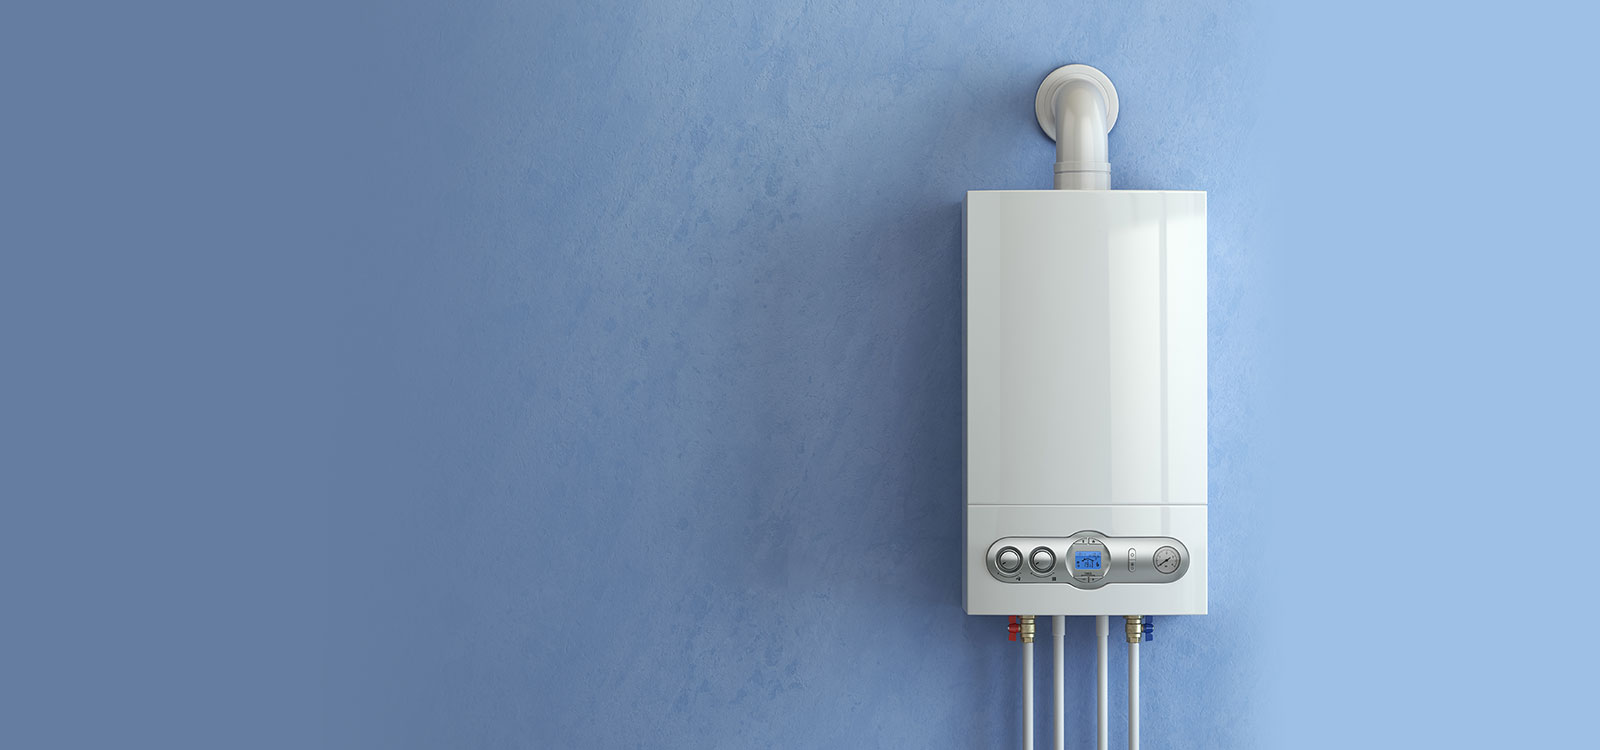 new boiler on blue wall